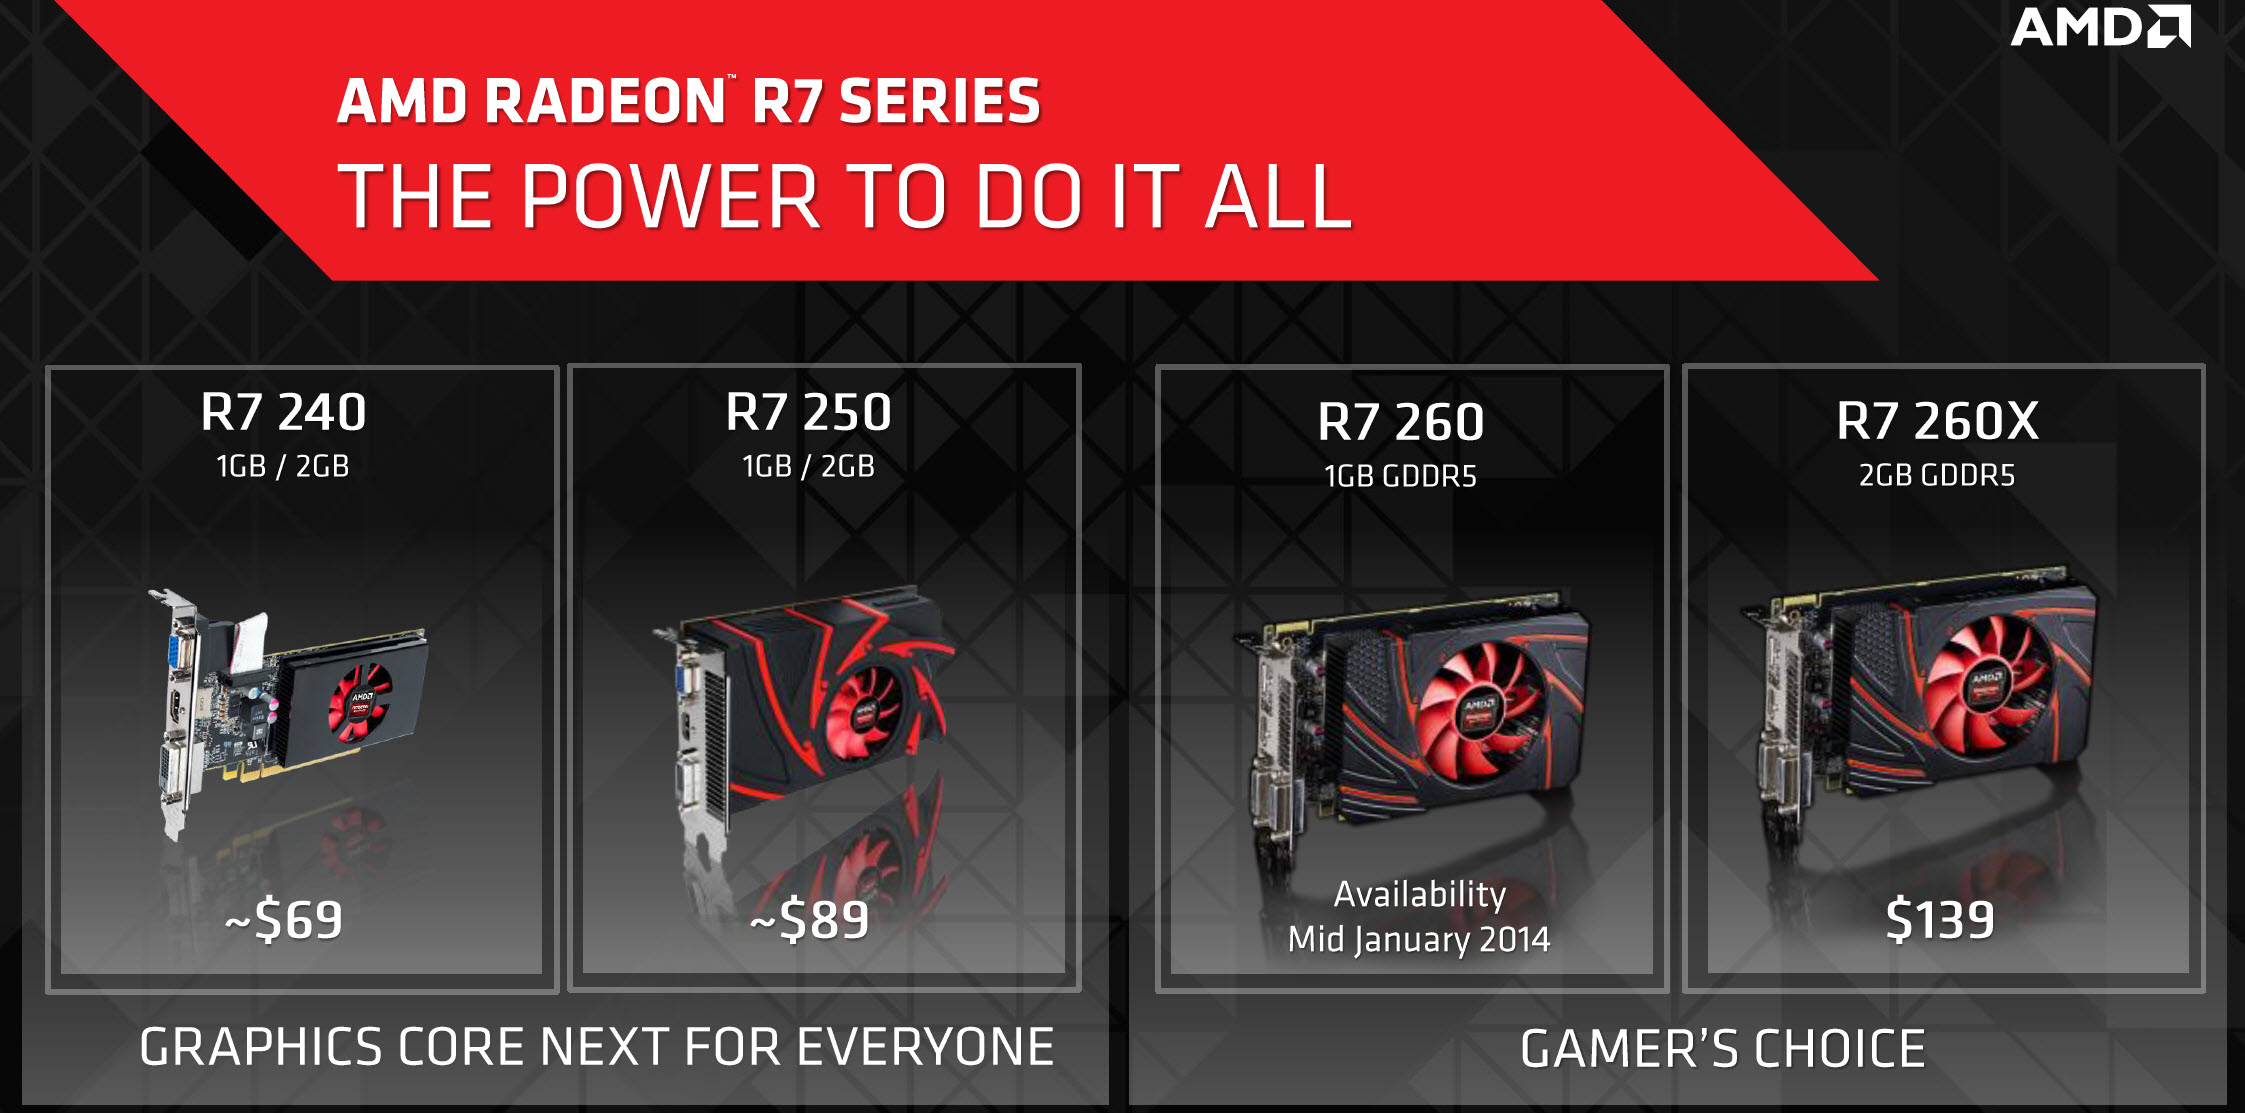 AMD Unveils The Radeon R7 260 'Bonaire Pro' GPU - Launches